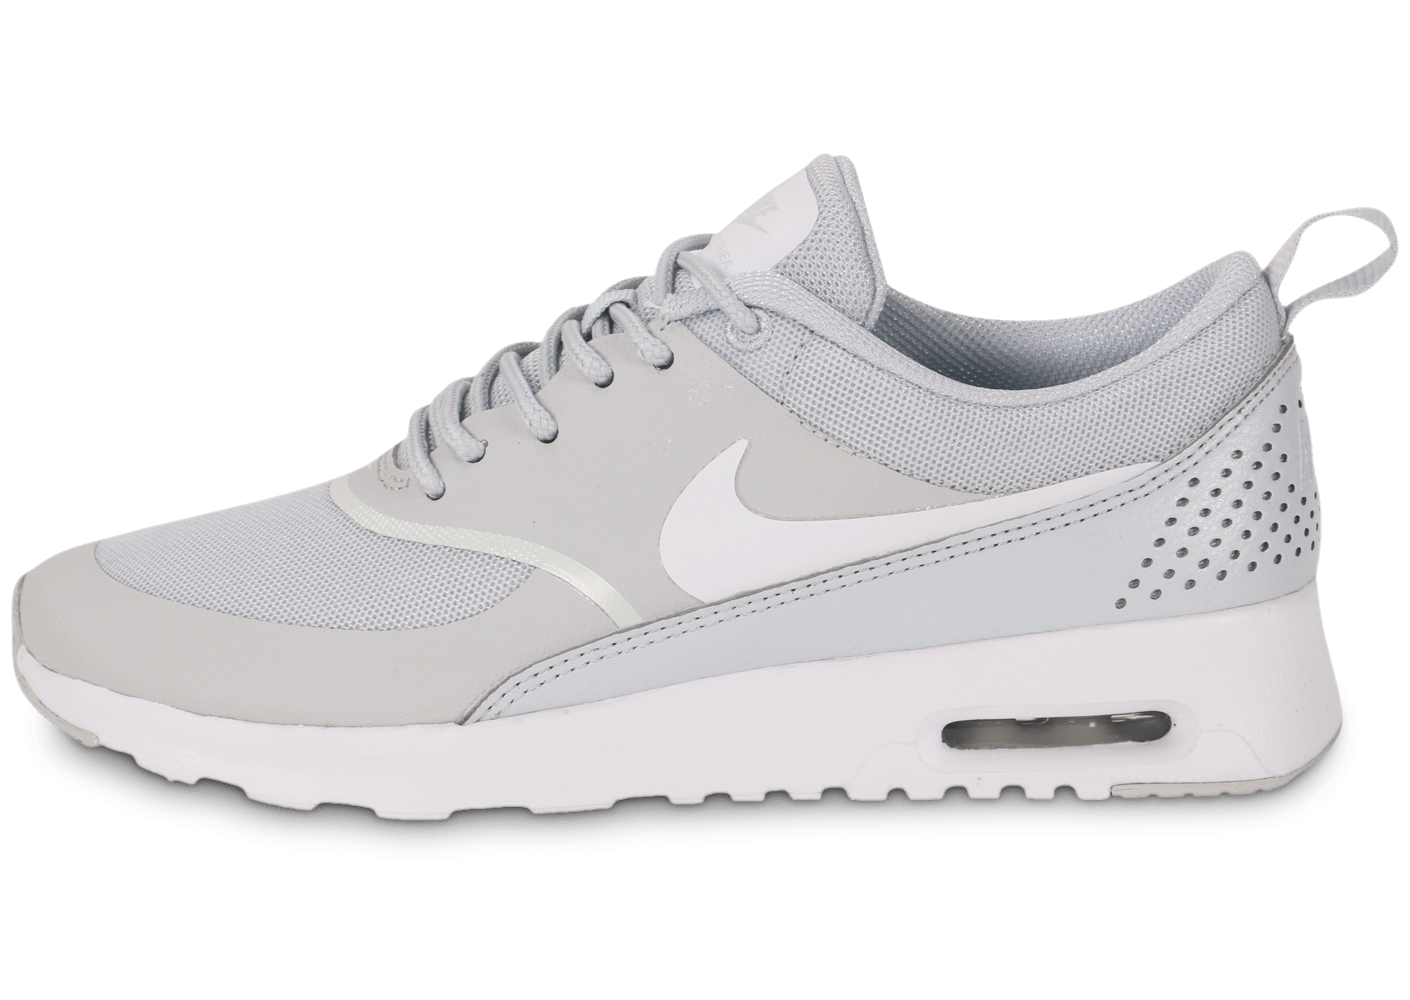 nike air max thea grise chaussures chaussures chausport. Black Bedroom Furniture Sets. Home Design Ideas